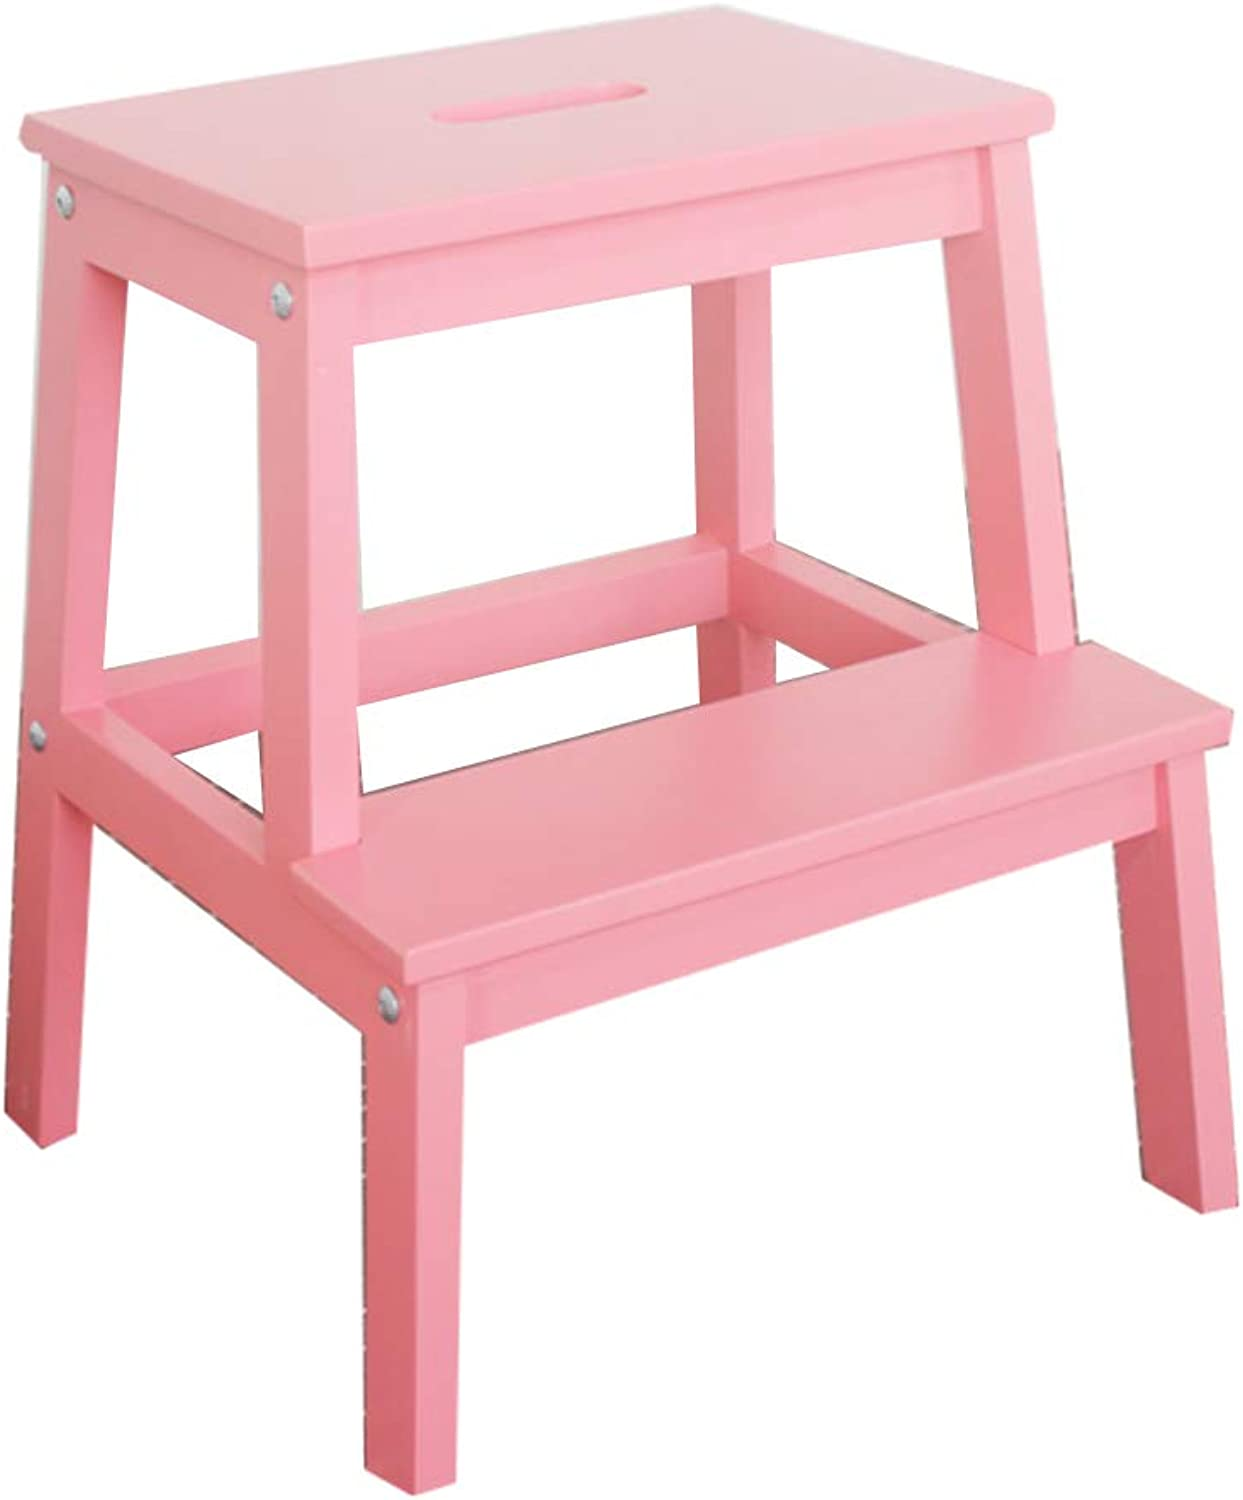 Ladders Attic Ladders Step Stool Stair Chair Solid Wood Step Stool Home Multi-function Chair Stool Change shoes Bench Indoor Attic Step Stool Two-step Step Ladder Load Capacity 150kg Ladders Attic Ladd